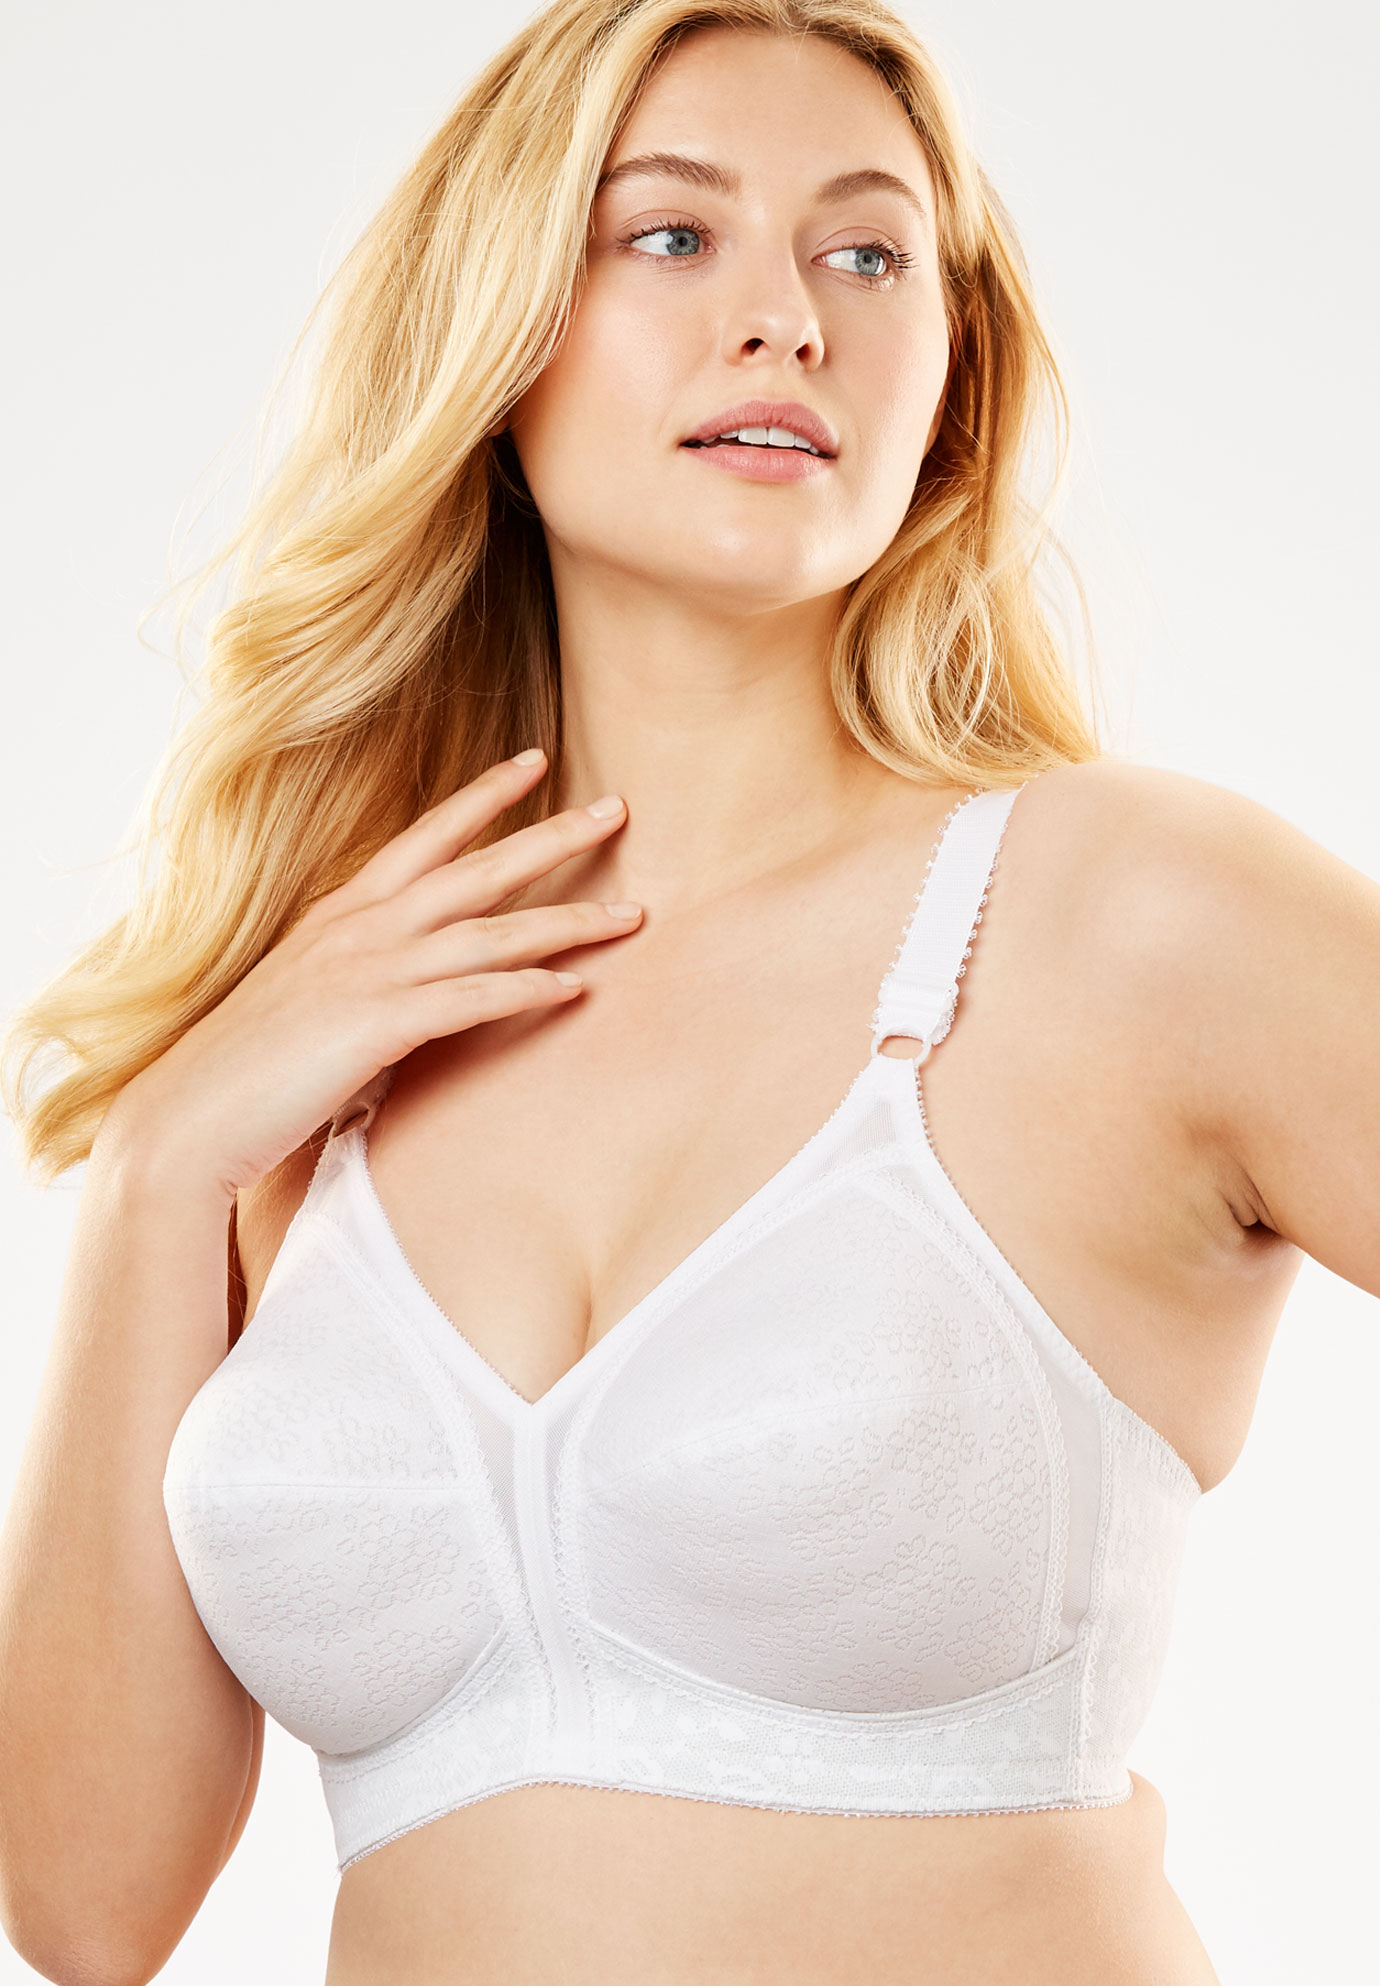 Playtex® 18 Hour Sensational Support Wireless Bra 20/27,